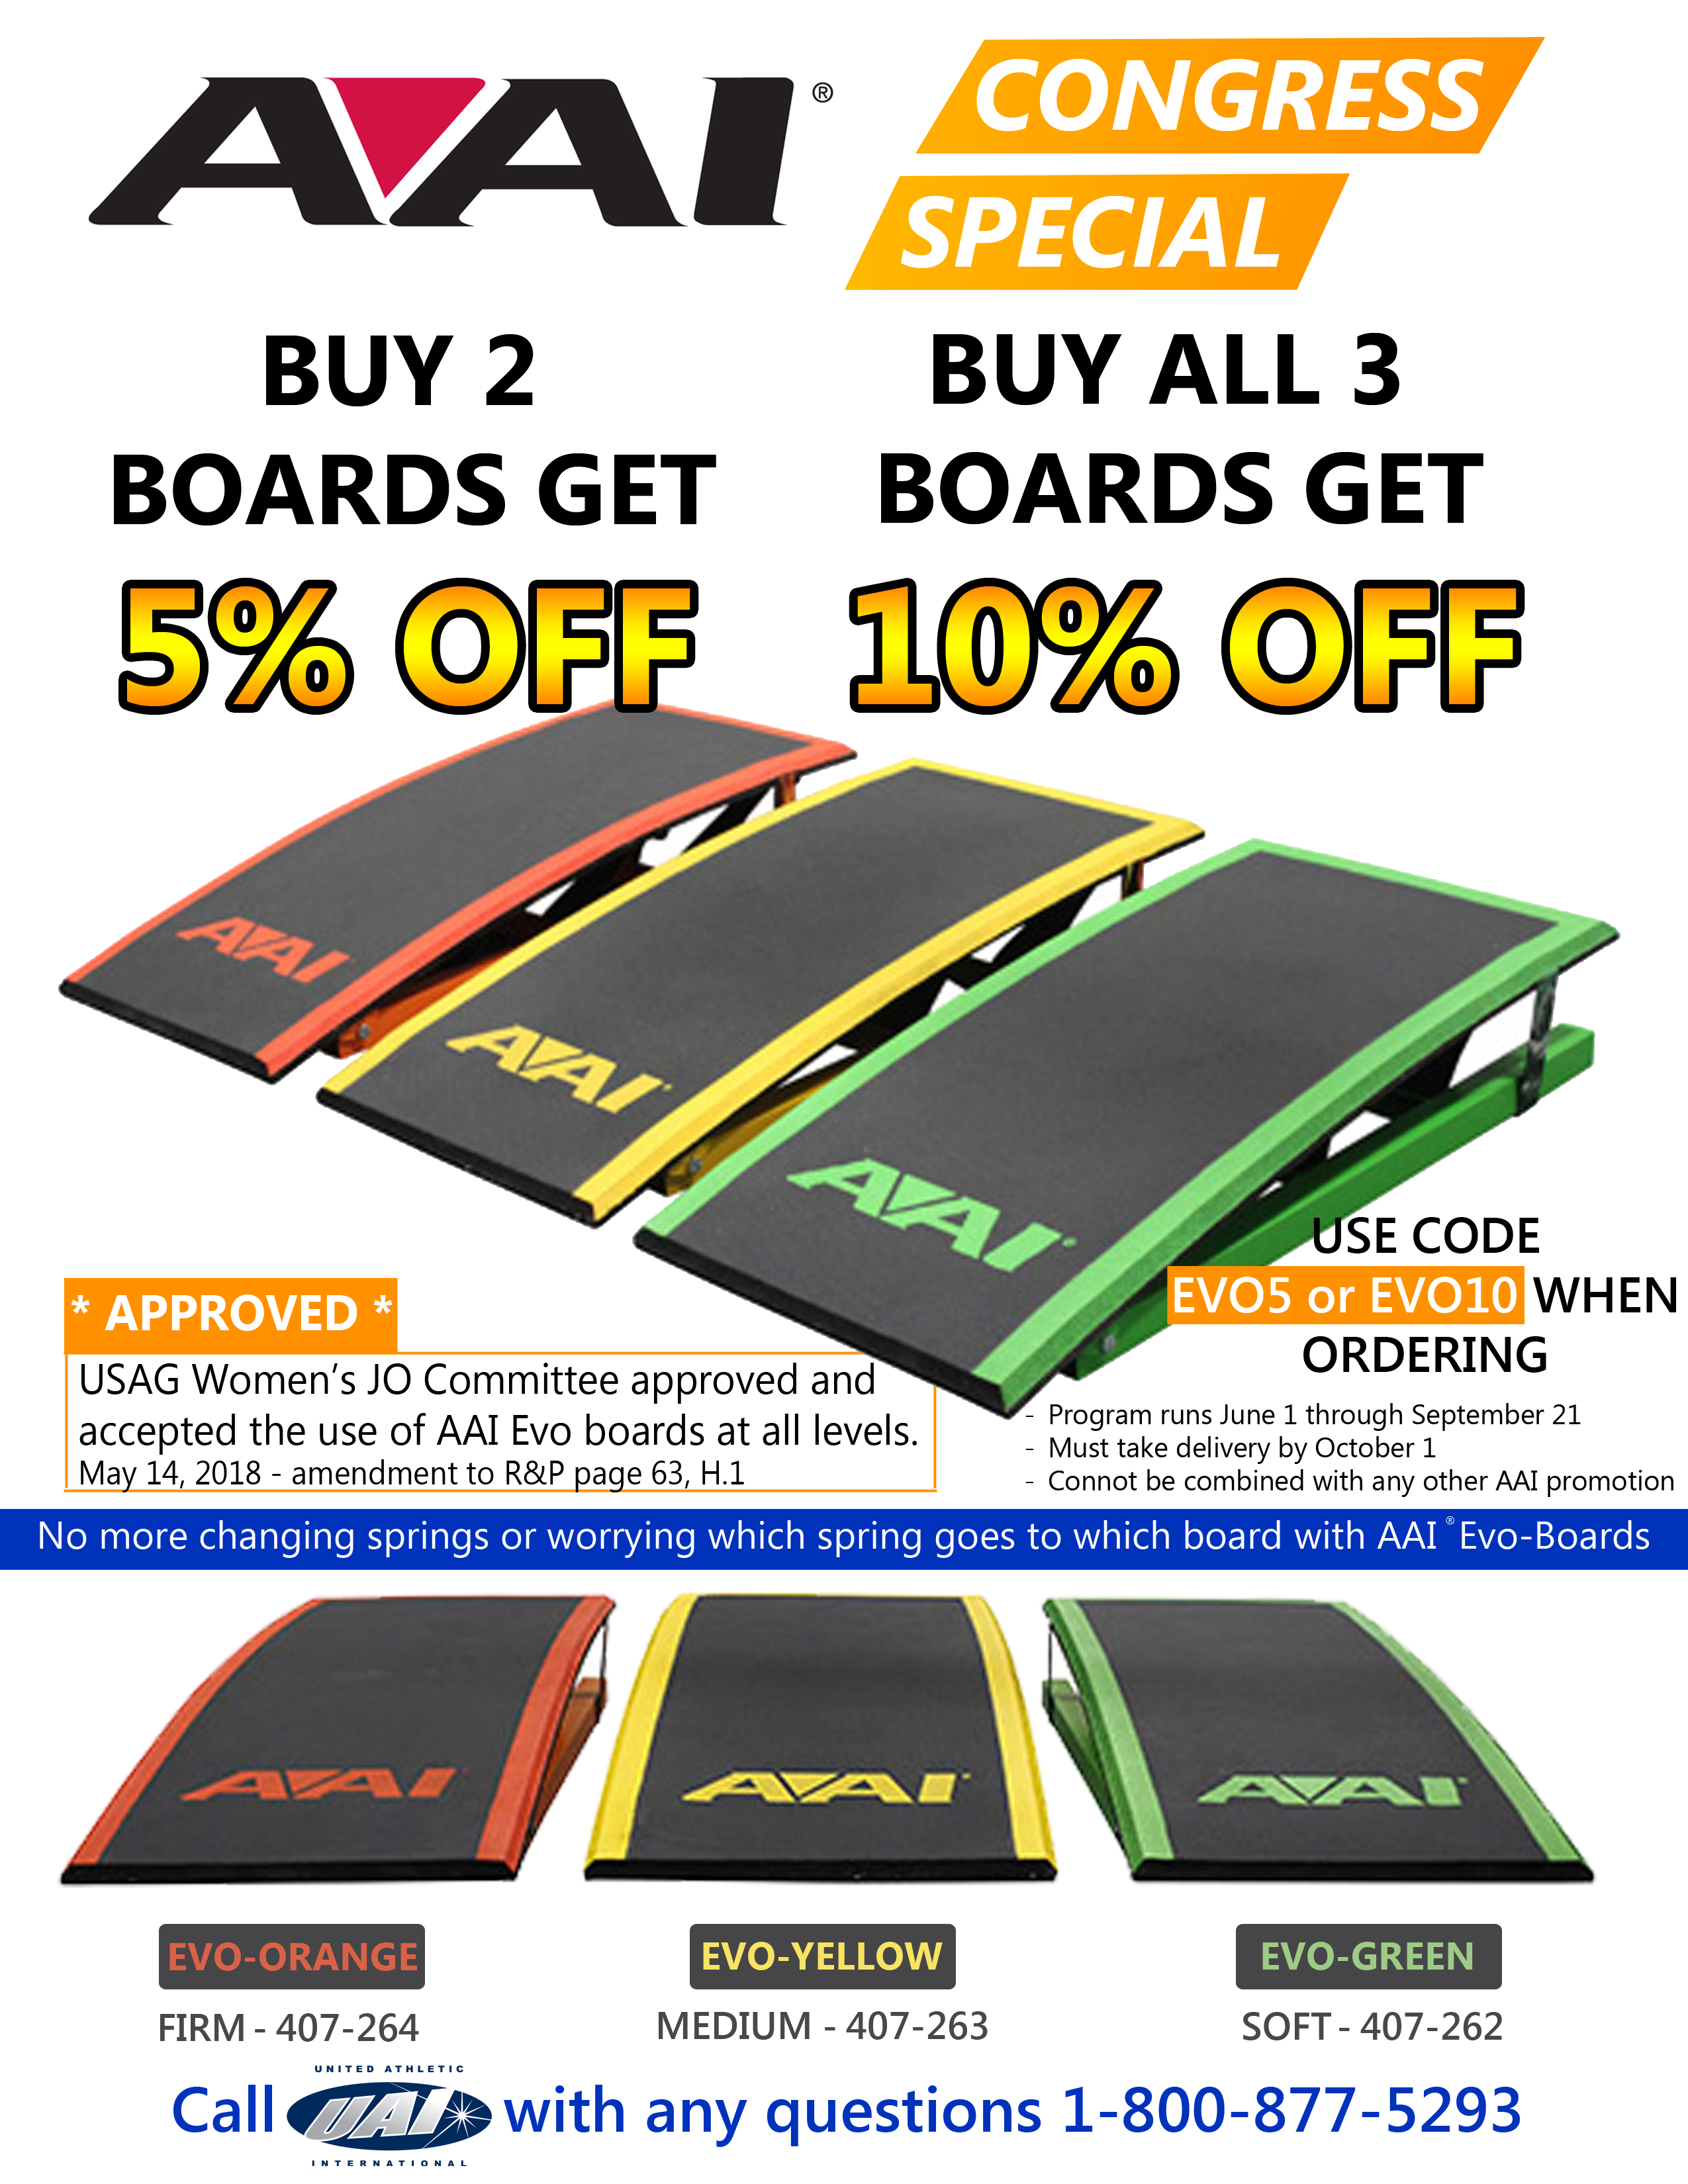 evo-board-5-and-10-percent-off-2018.png